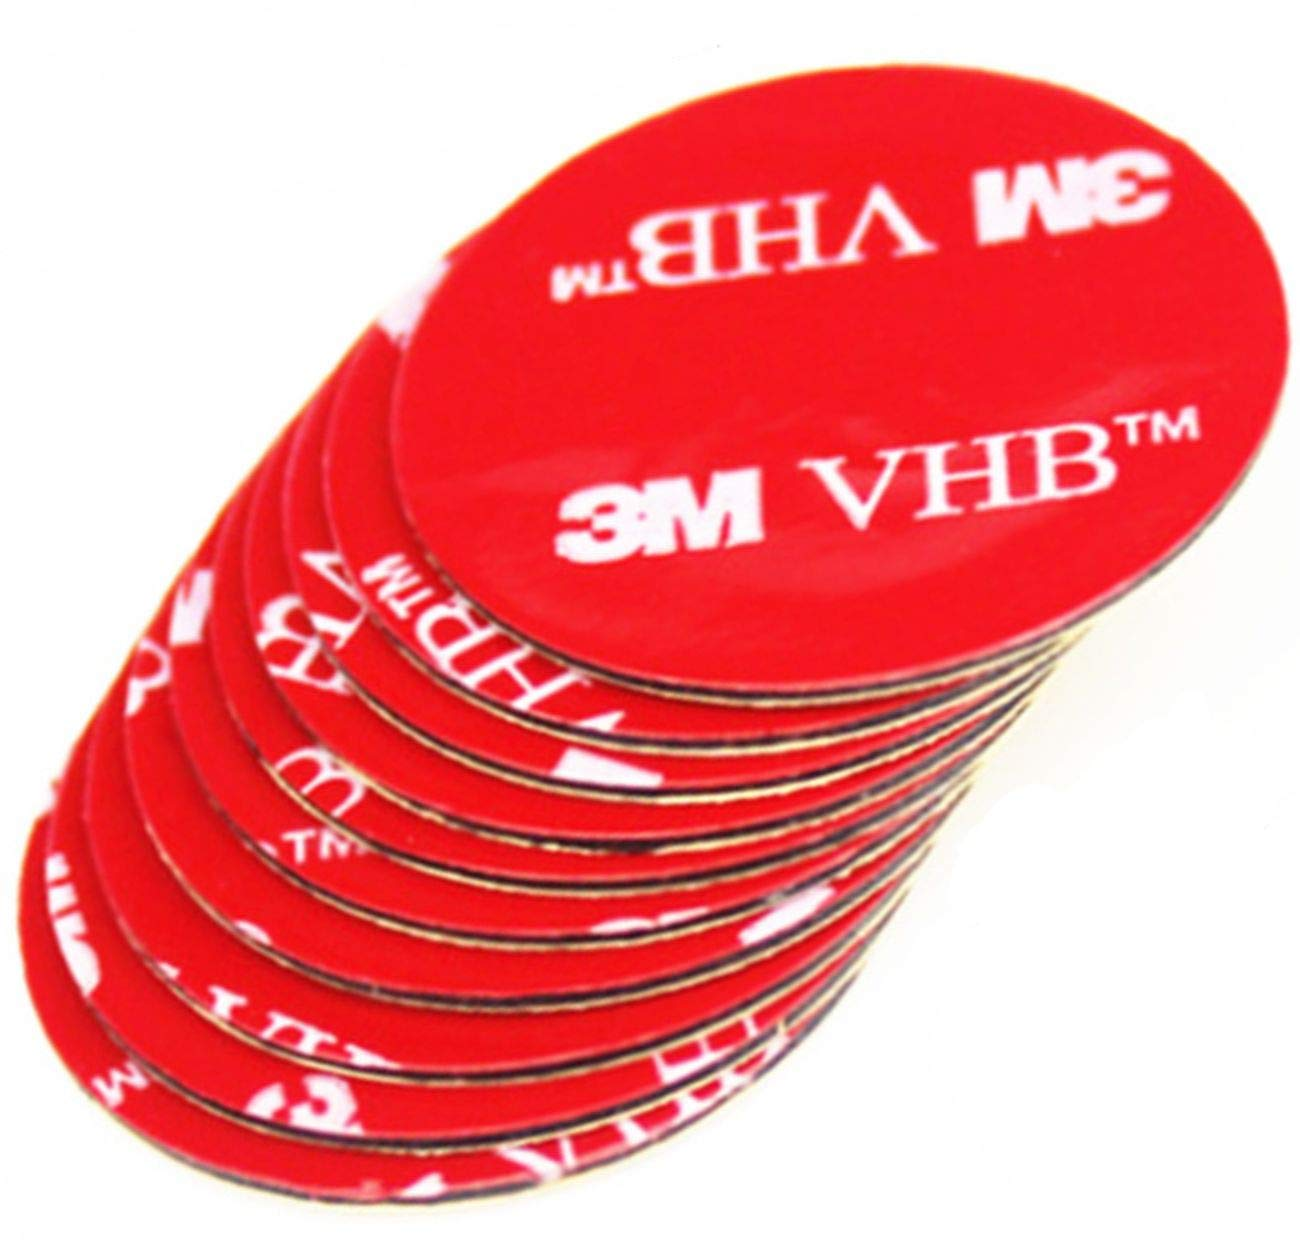 Simply the Best BLACK, GREY or CLEAR Double Sided 3M VHB Acrylic Round Tape Circles ~ 50mm Dia x 1mm Thick ~ Adhesive ART, DIY, ELECTRONICS & CAR REPAIRS Pads